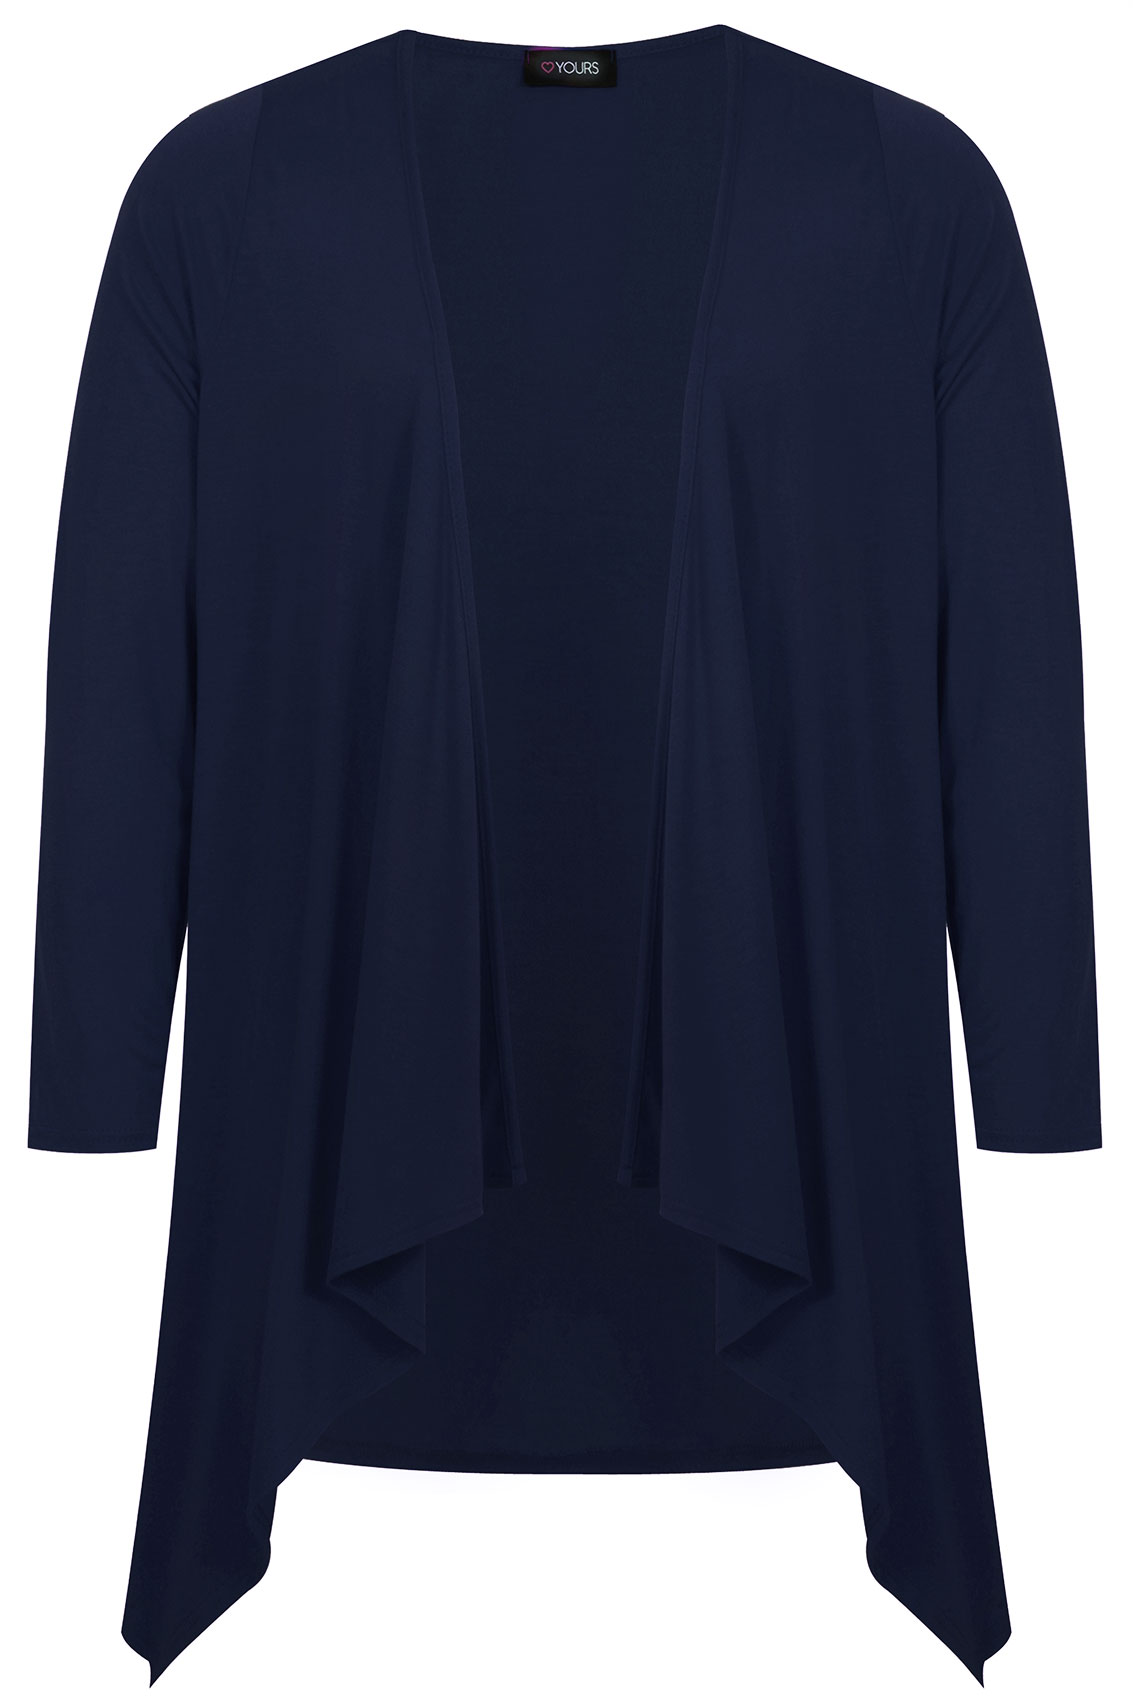 Find great deals on eBay for navy cardigan. Shop with confidence.